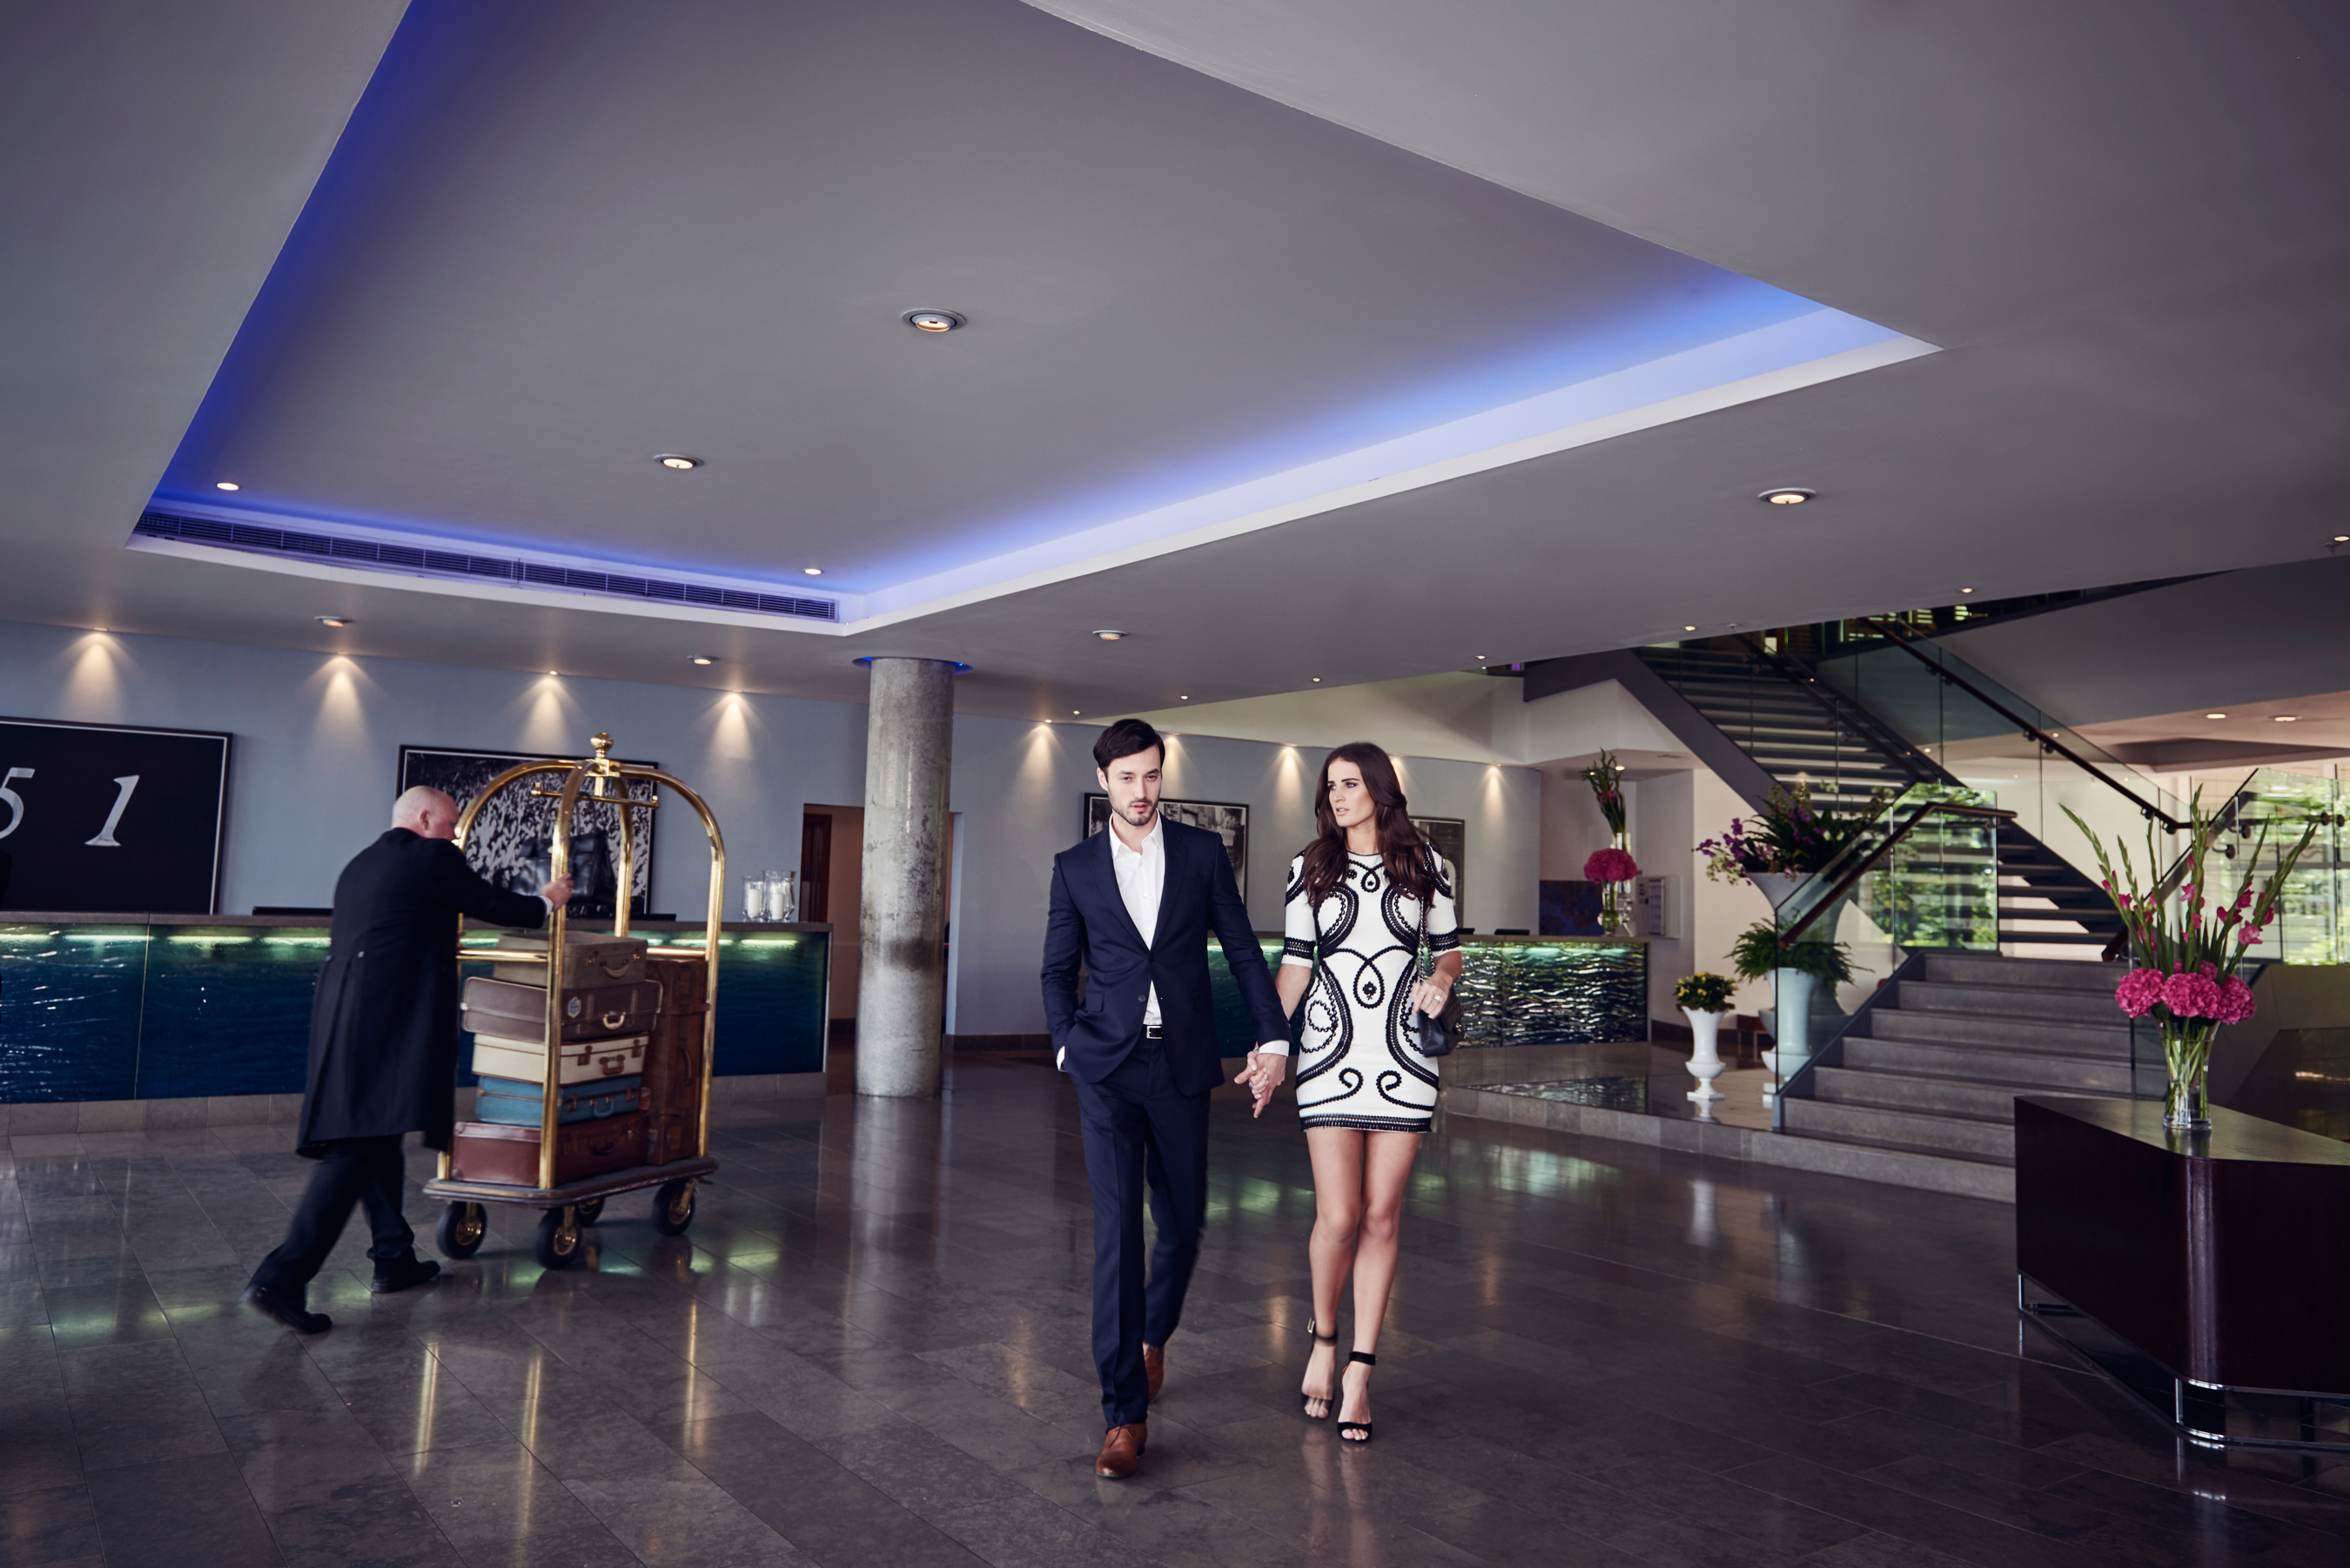 Matt-Stansfield-Lifestyle-photographer-advertising-Lowry-Hotel-4811